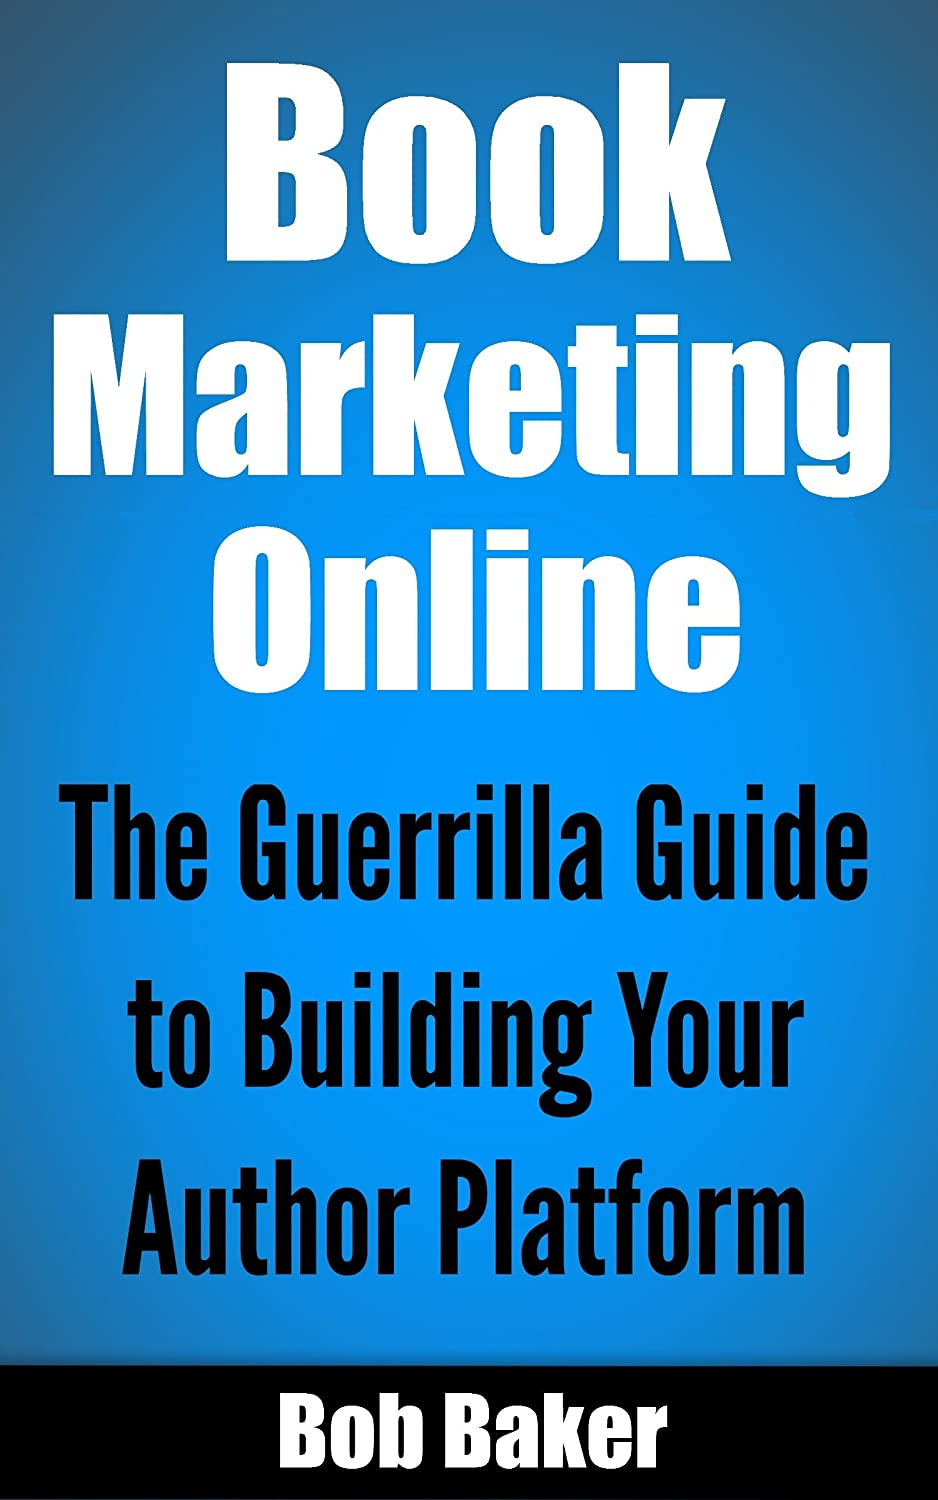 Book Marketing Online